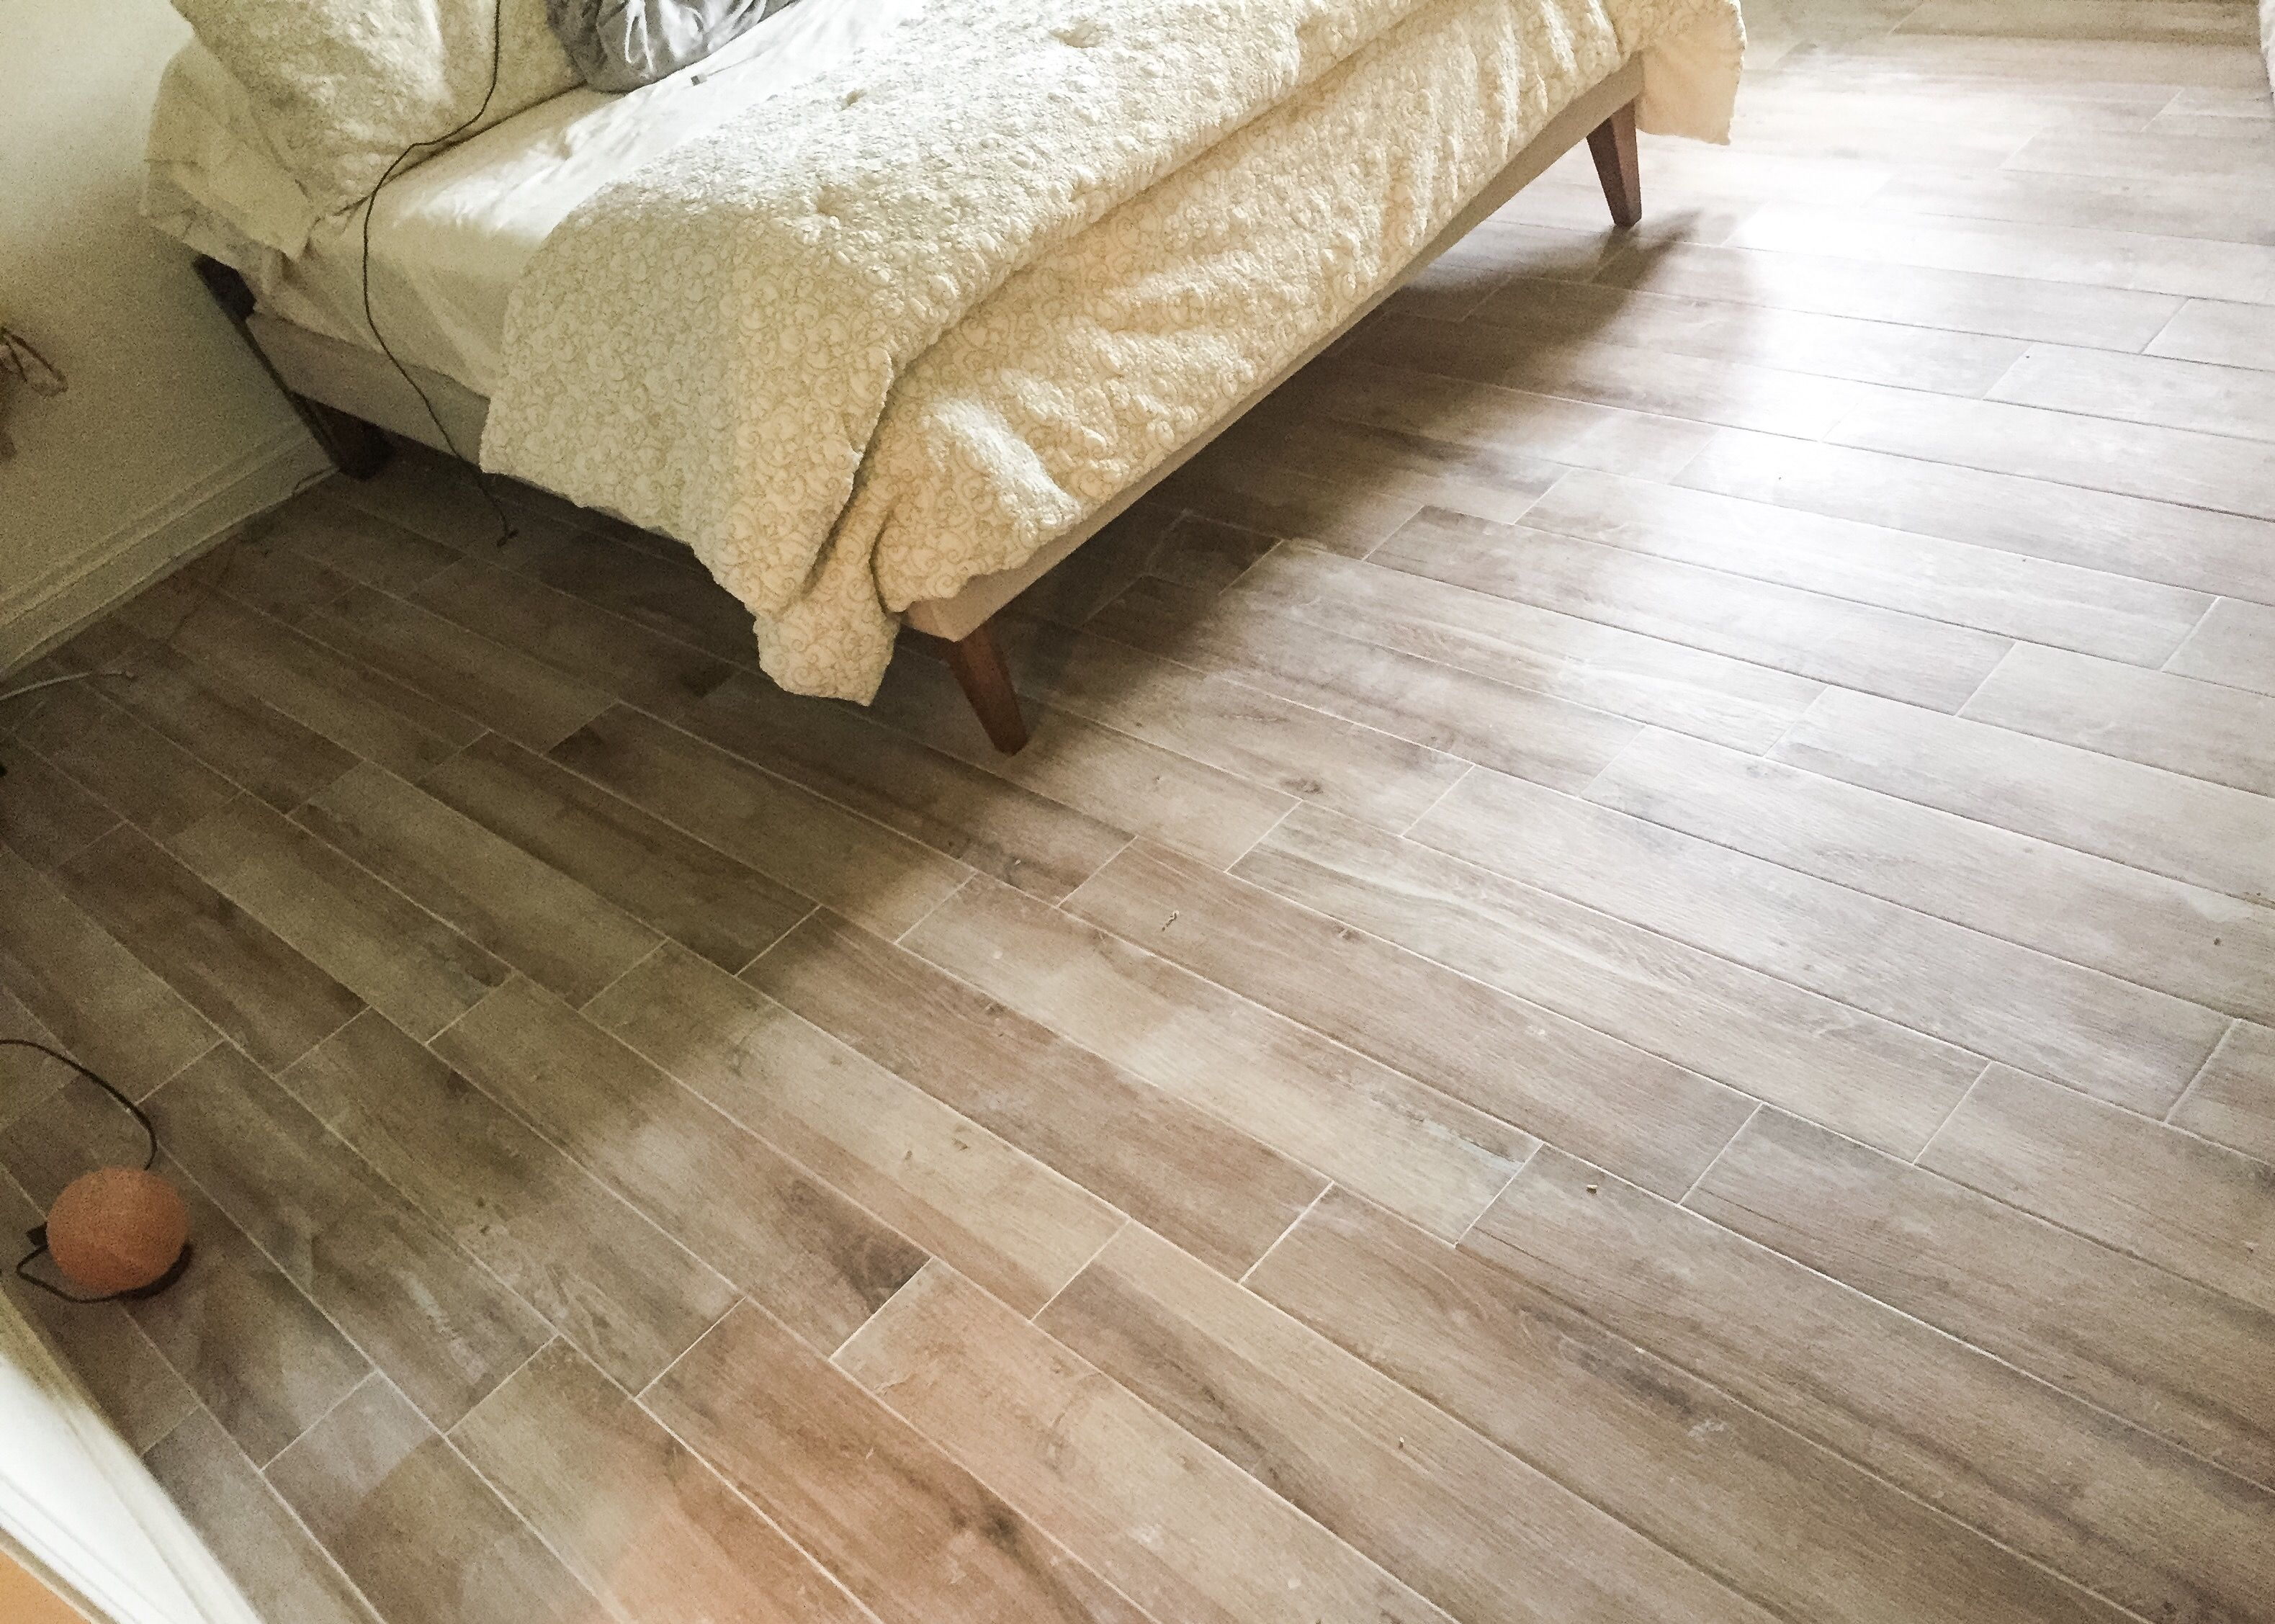 Dallas teka 6 in x 36 in porcelain wood tile tile floors dallas teka 6 in x 36 in porcelain wood tile dailygadgetfo Gallery